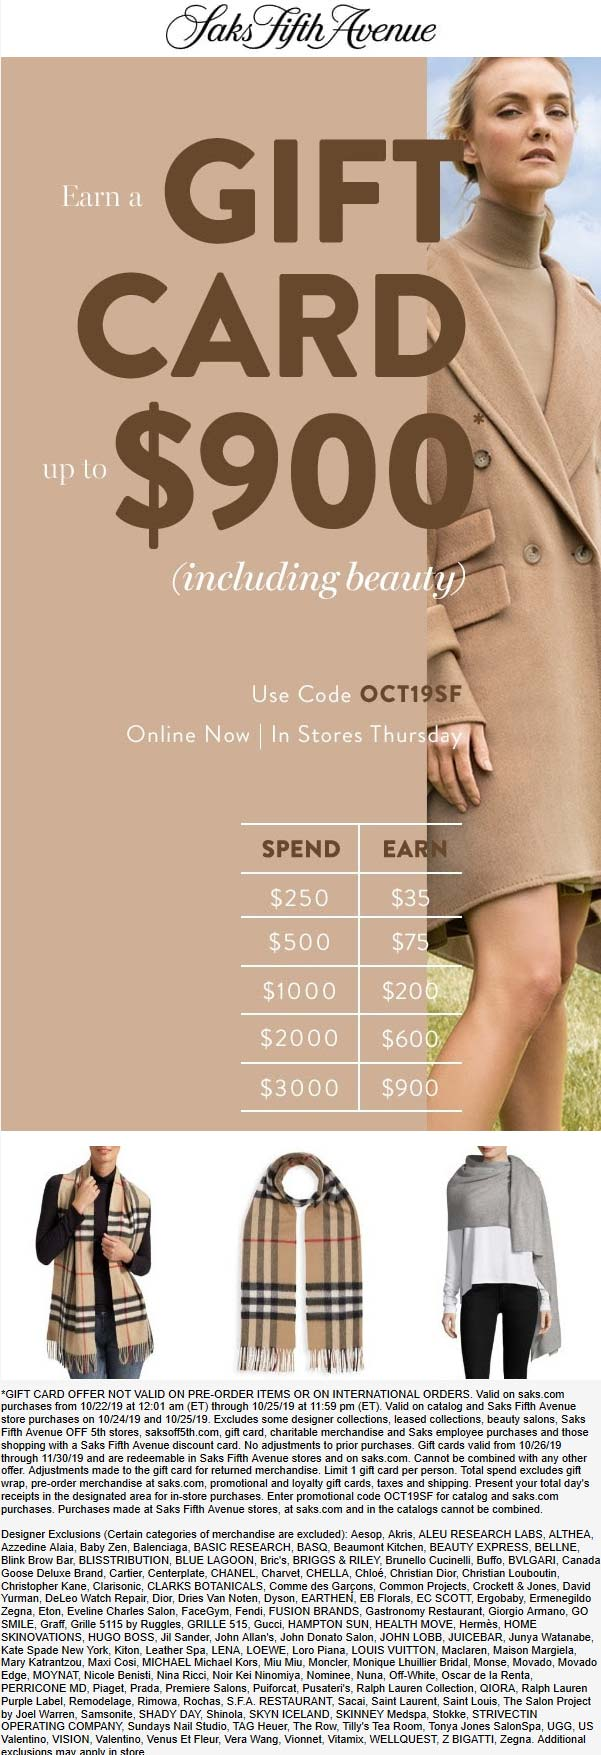 Saks Fifth Avenue Coupon November 2019 $35-$900 off $250+ at Saks Fifth Avenue, or online via promo code OCT19SF